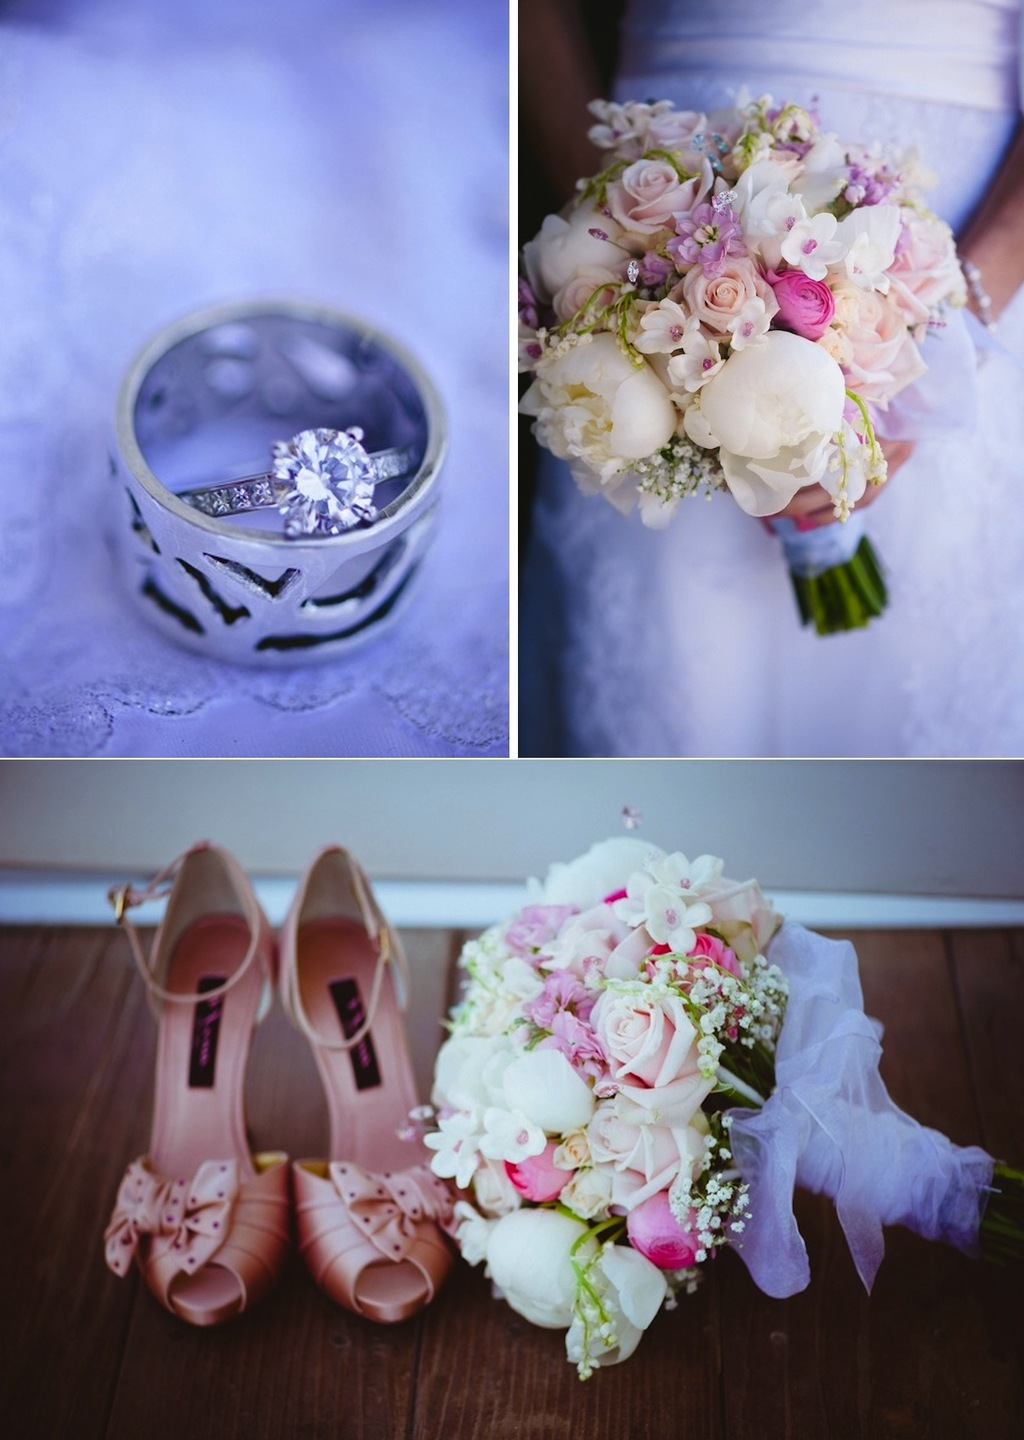 Real Wedding Genoa Nevada Lincoln Bratt Annie X Photographie Bride Shoes Ring Bouquet